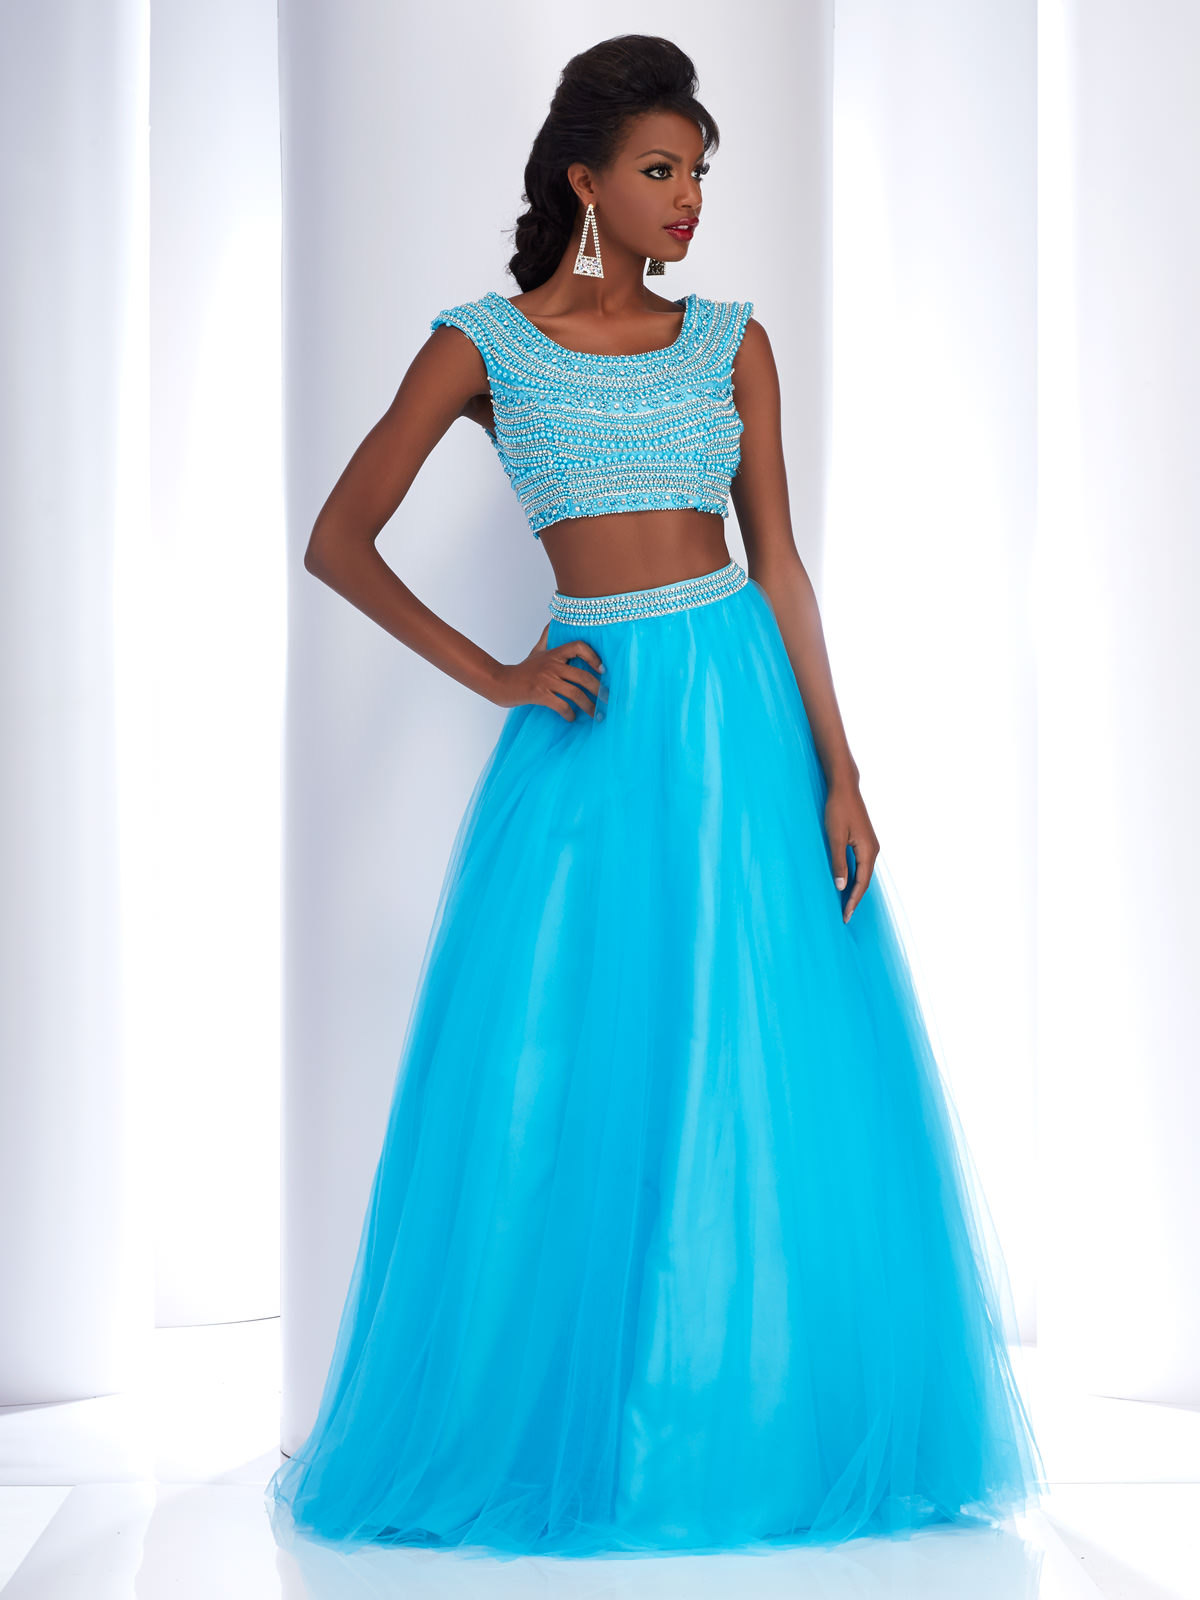 Clarisse 2826 Prom Dress | Promgirl.net